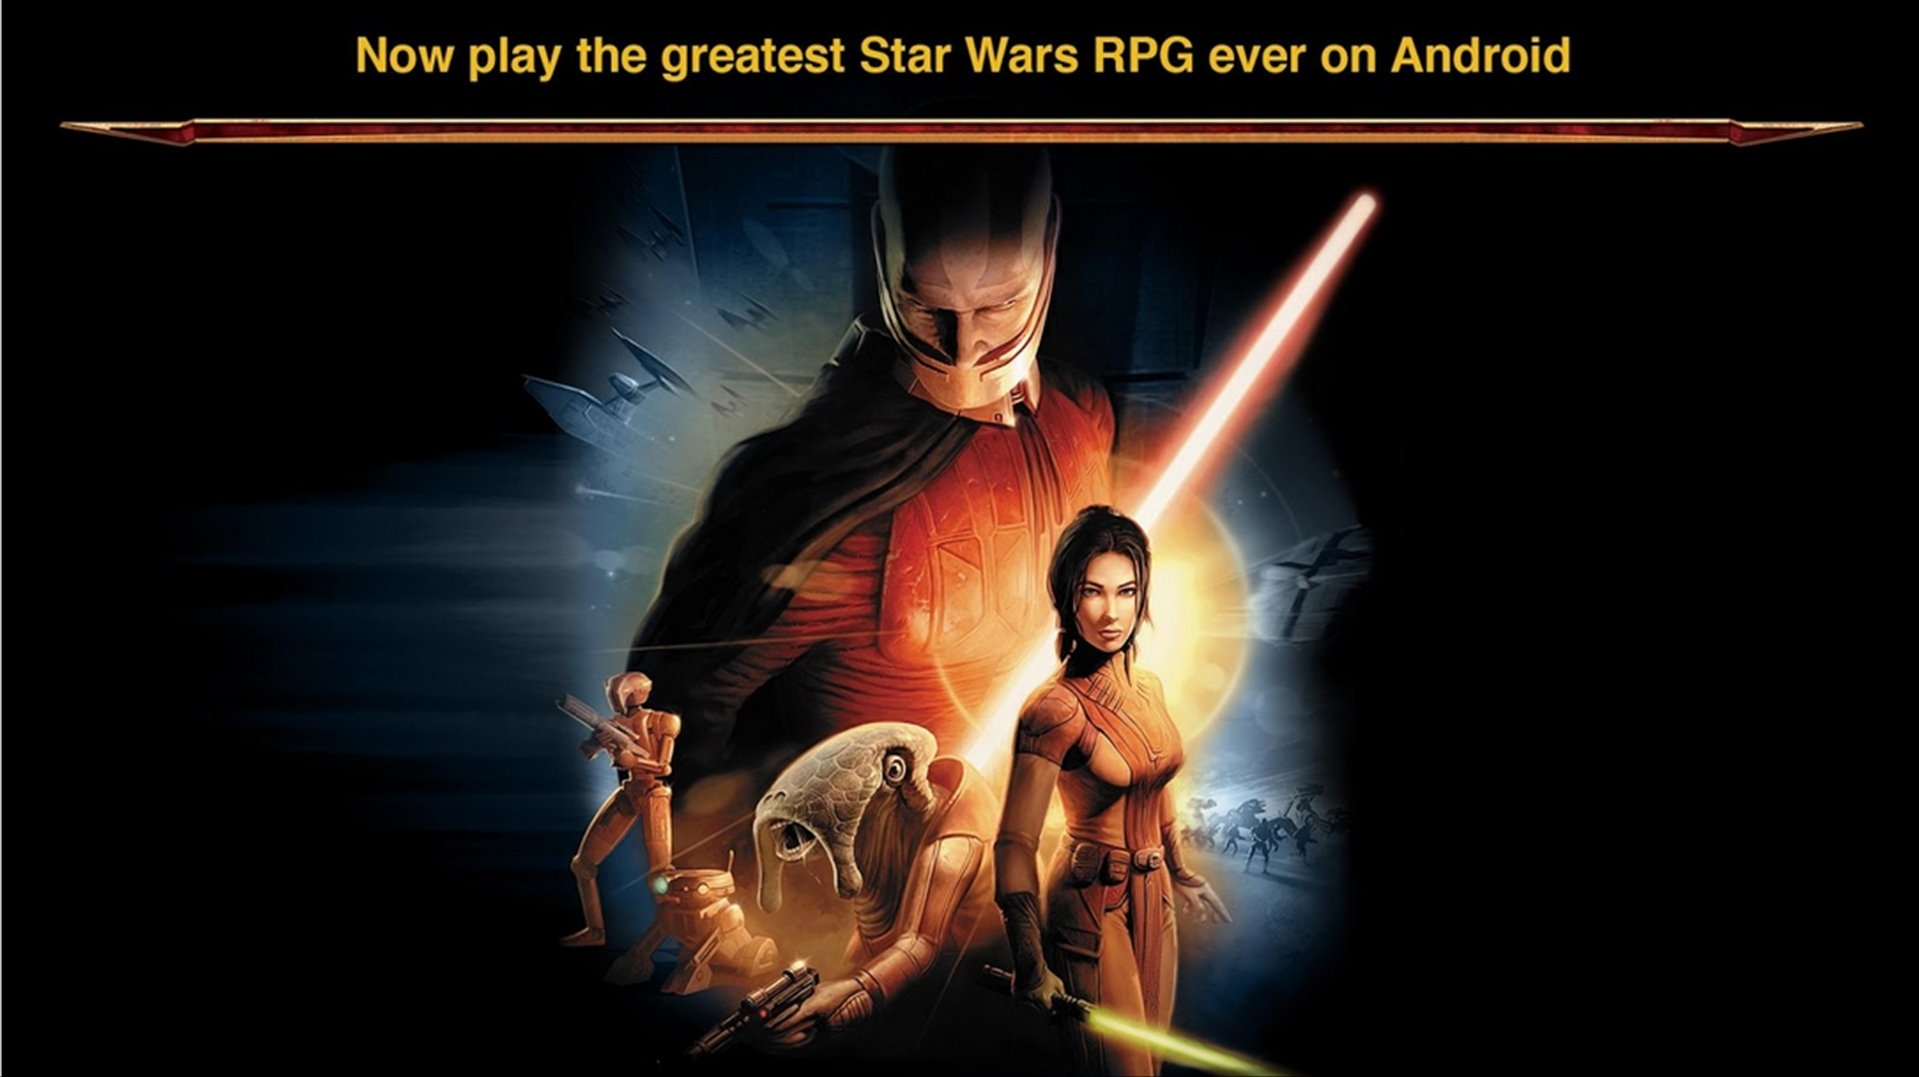 Star Wars: Knights of the Old Republic Android image 6